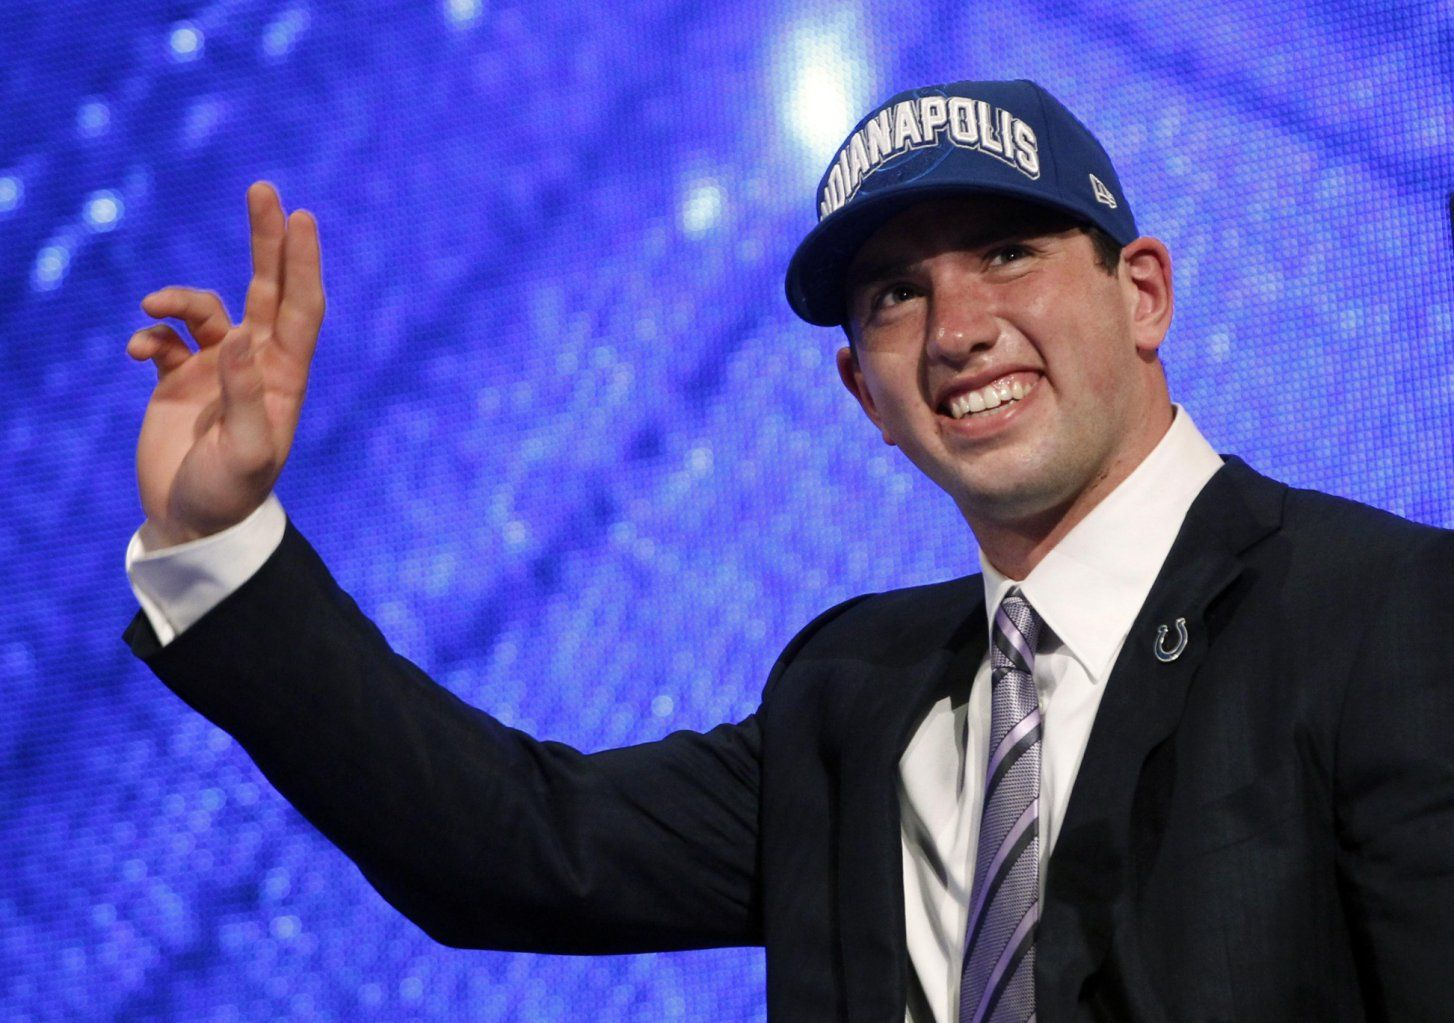 Andrew Luck from Stanford University, waves on stage after